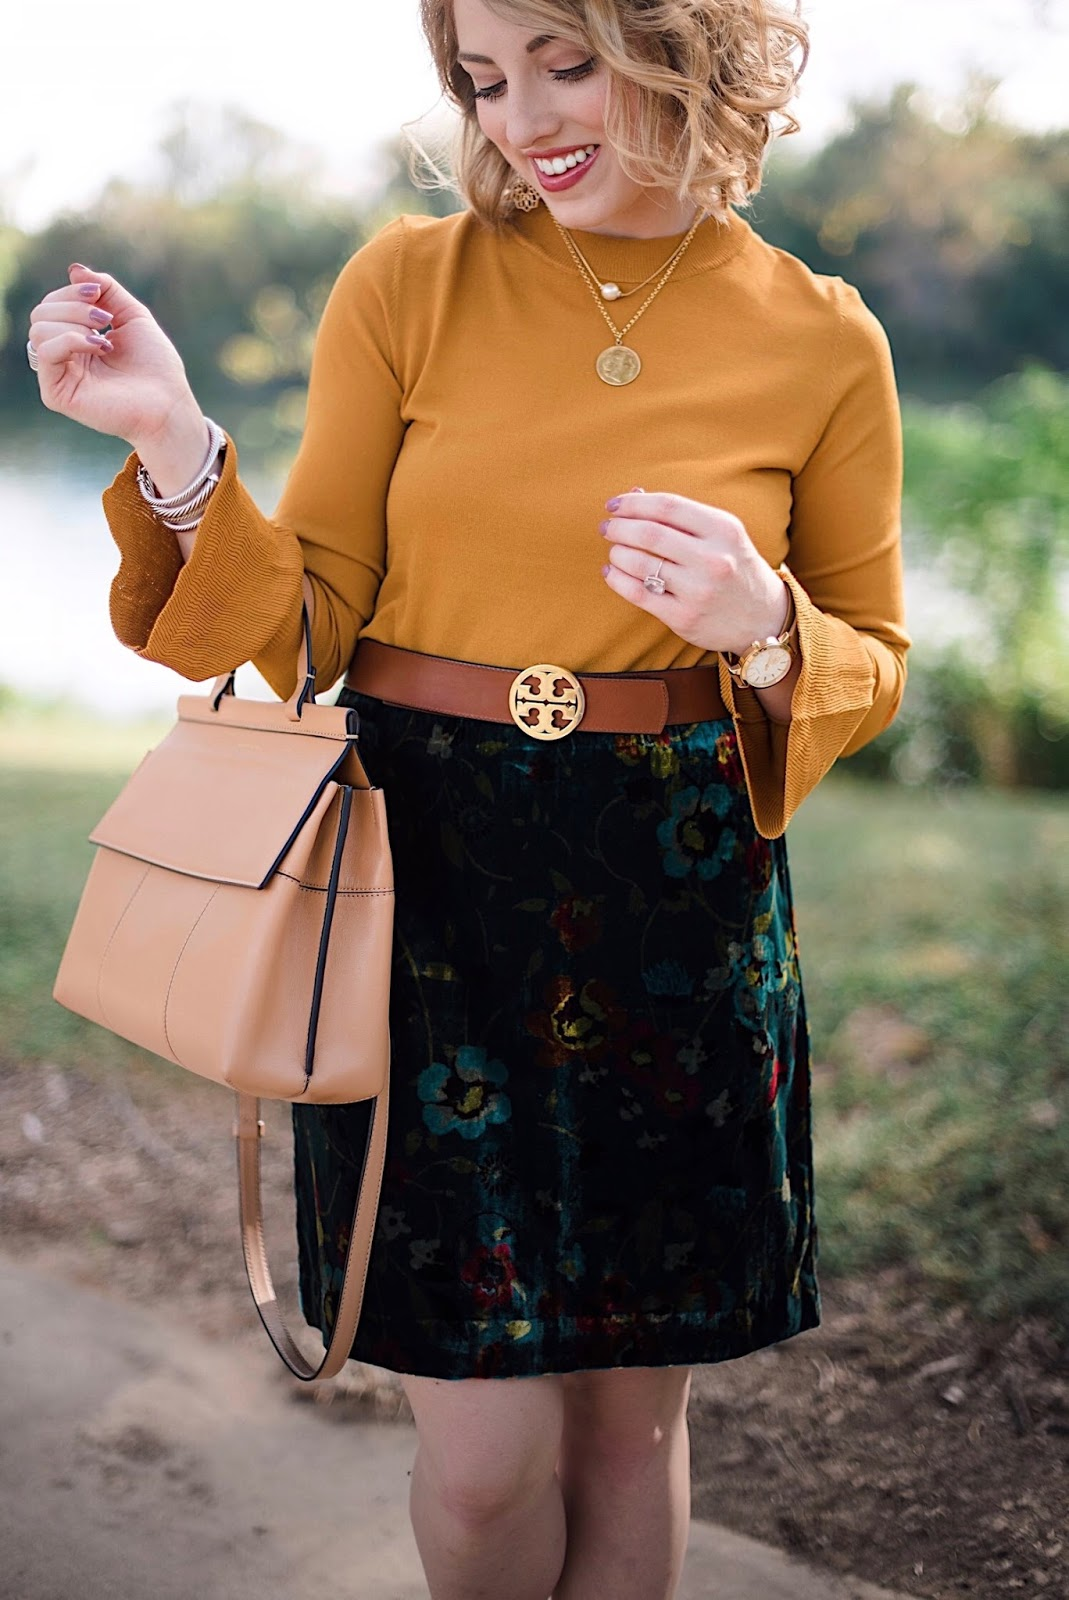 Tory Burch Accessories - Something Delightful